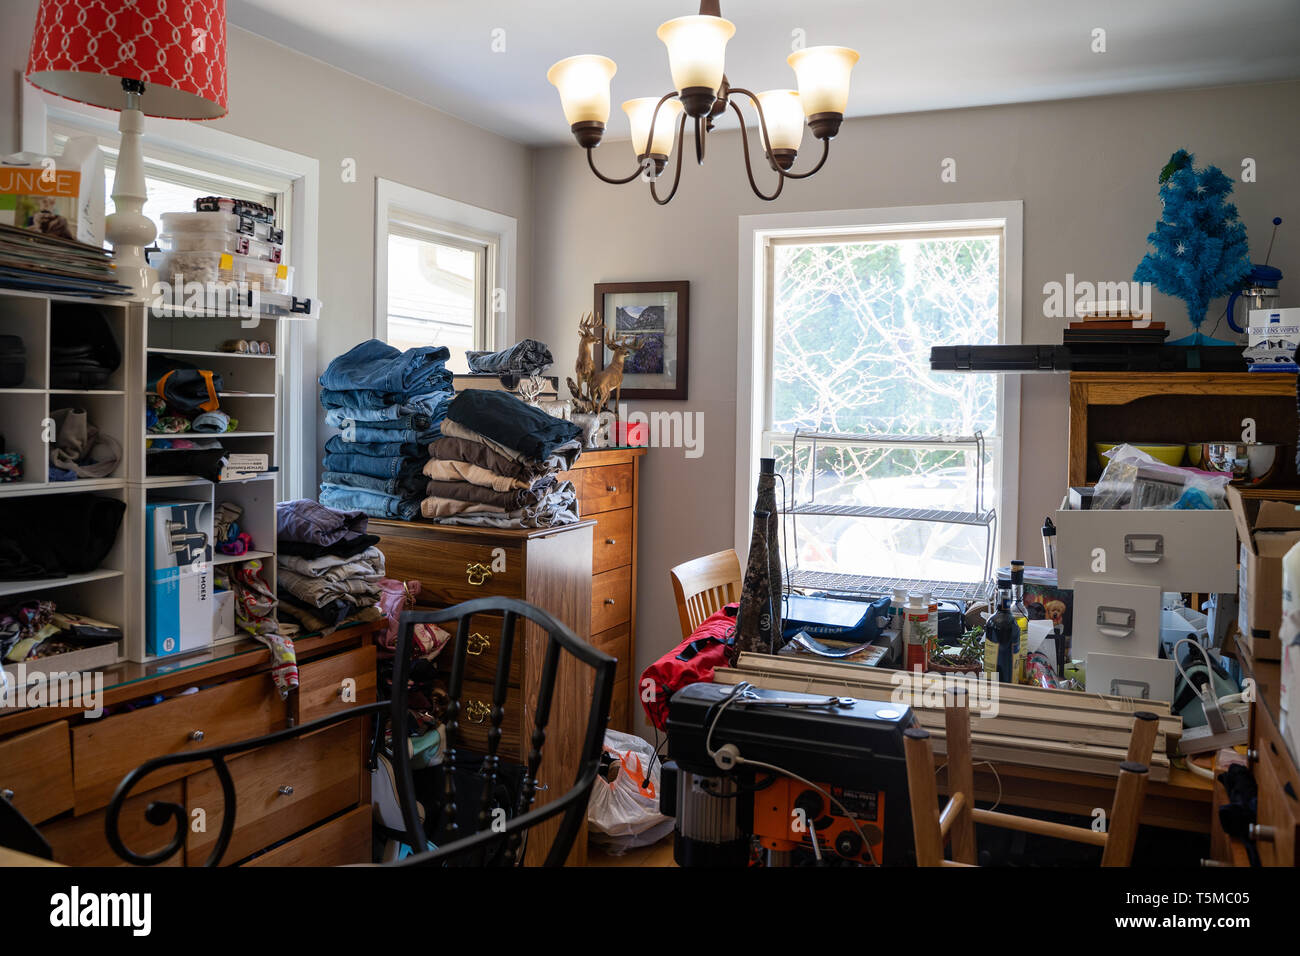 Minneapolis, Minnesota - April 24, 2019: Overcrowded residential kitchen in a home filled with junk. Concept for hoarding house, messy home, remodelin - Stock Image